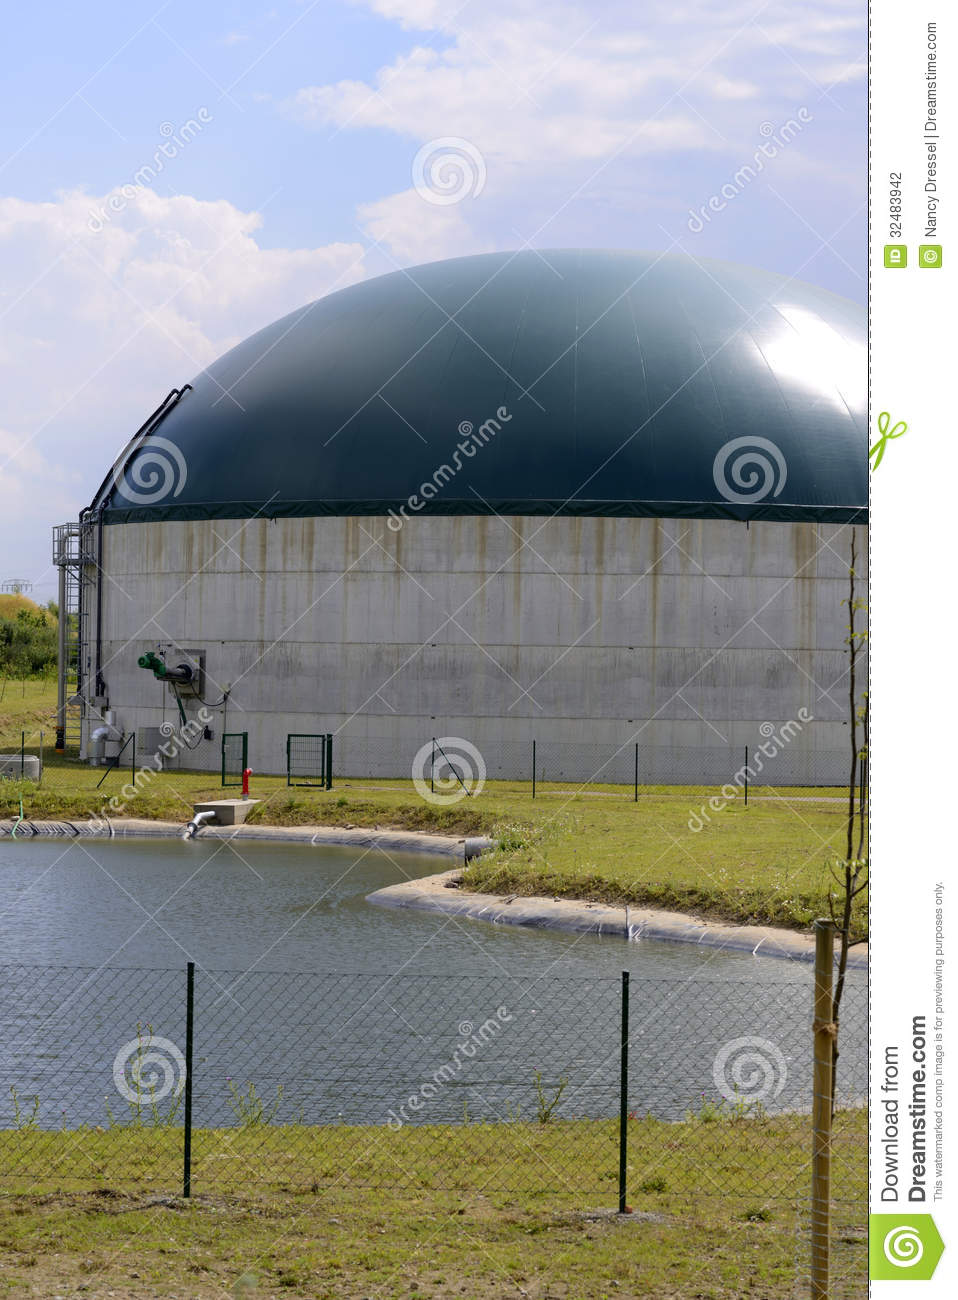 How To Make Biogas Plant Anaerobic Digester Images Of Home Design Or Gobar Gasplant Diagram Urdu Download Modern Stable With And Solar Stock Photography